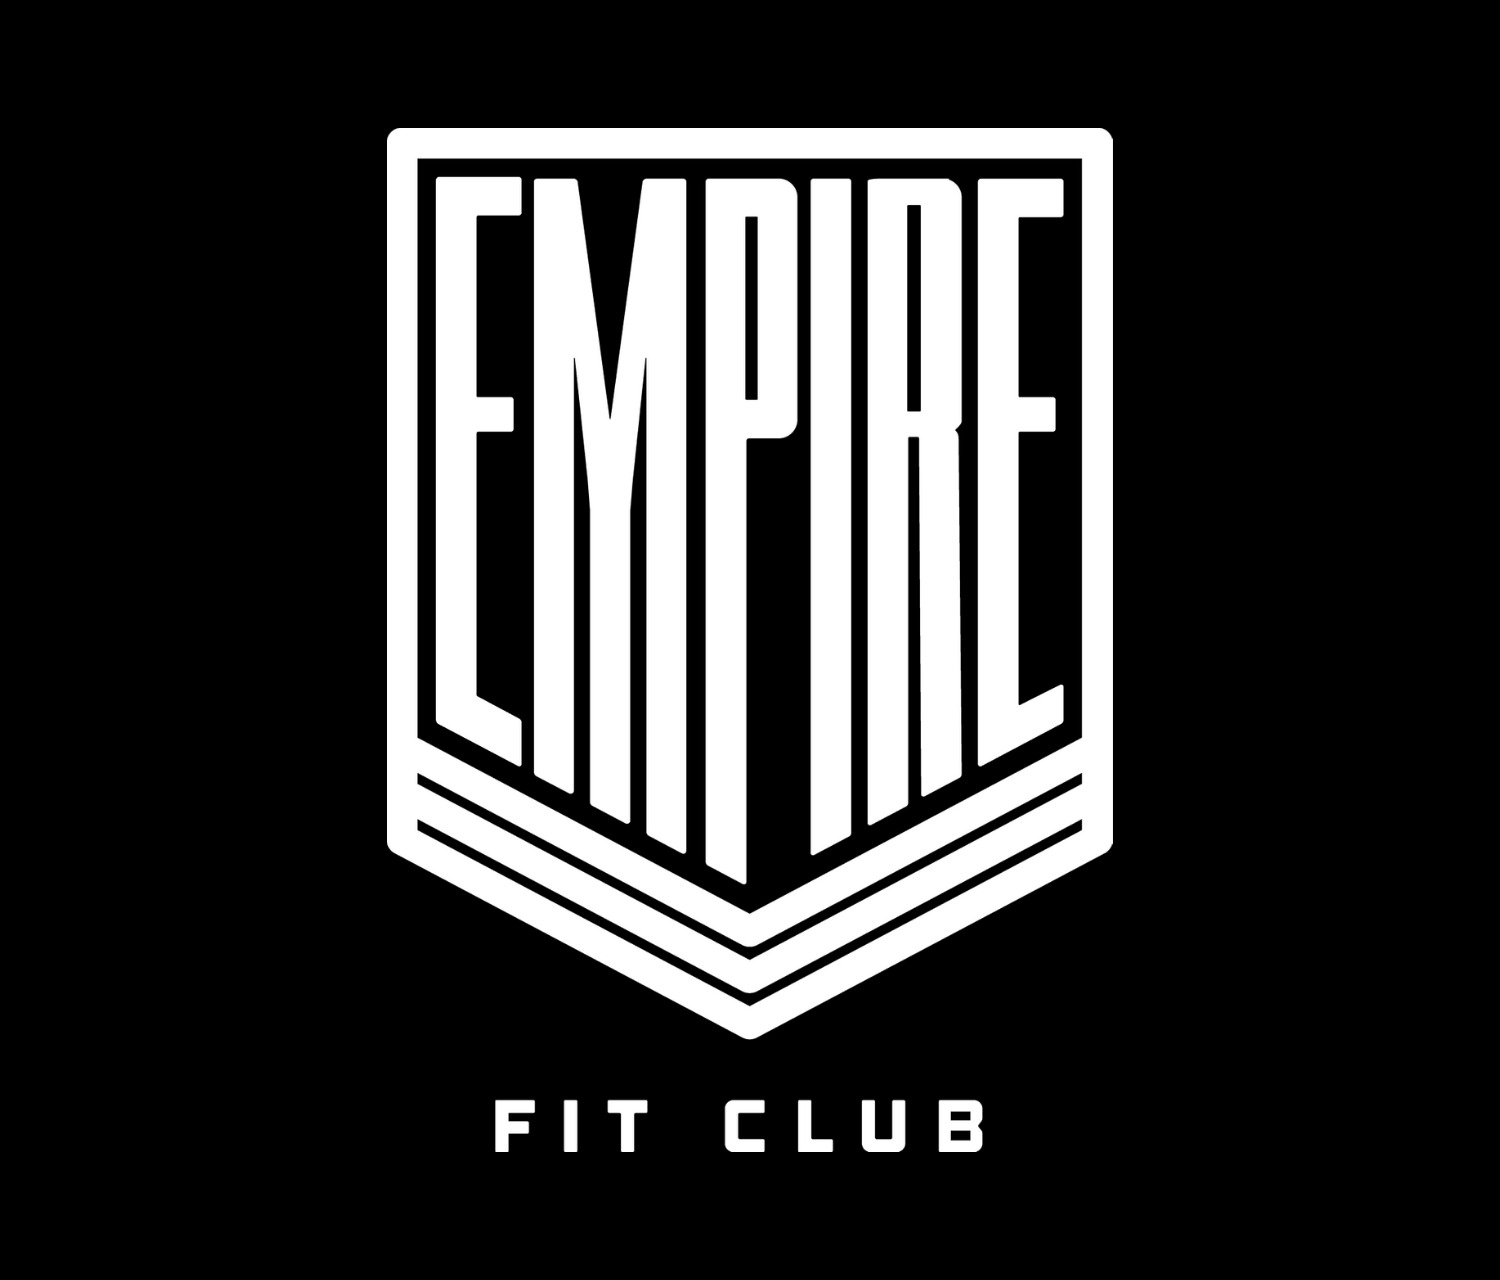 Empire Fit Club